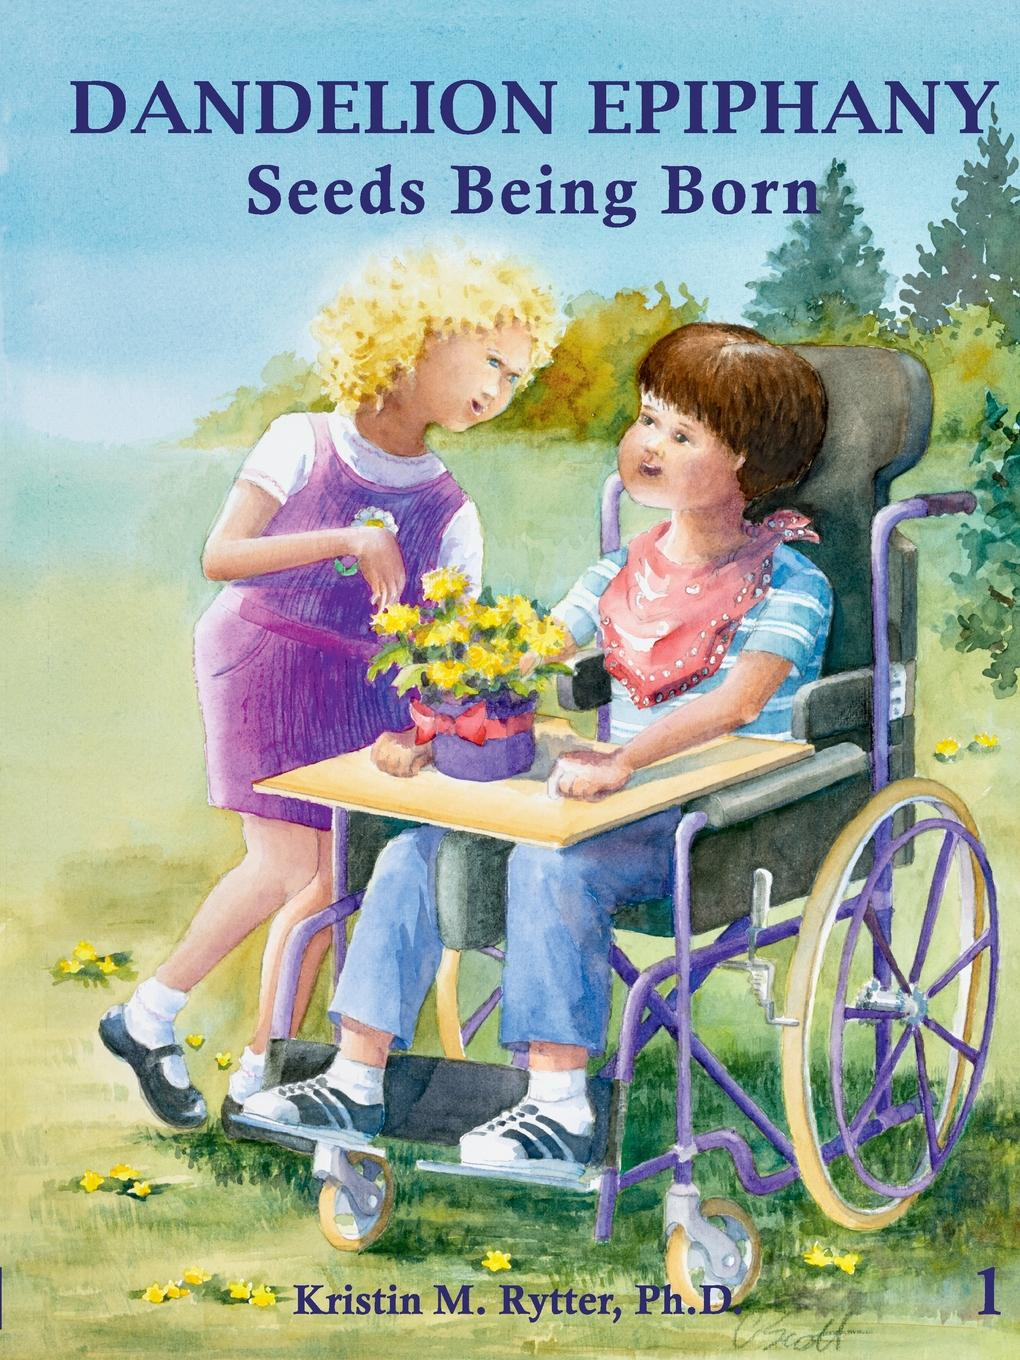 Kristin Rytter Dandelion Epiphany Seeds Being Born john adair john adair s 100 greatest ideas for being a brilliant manager